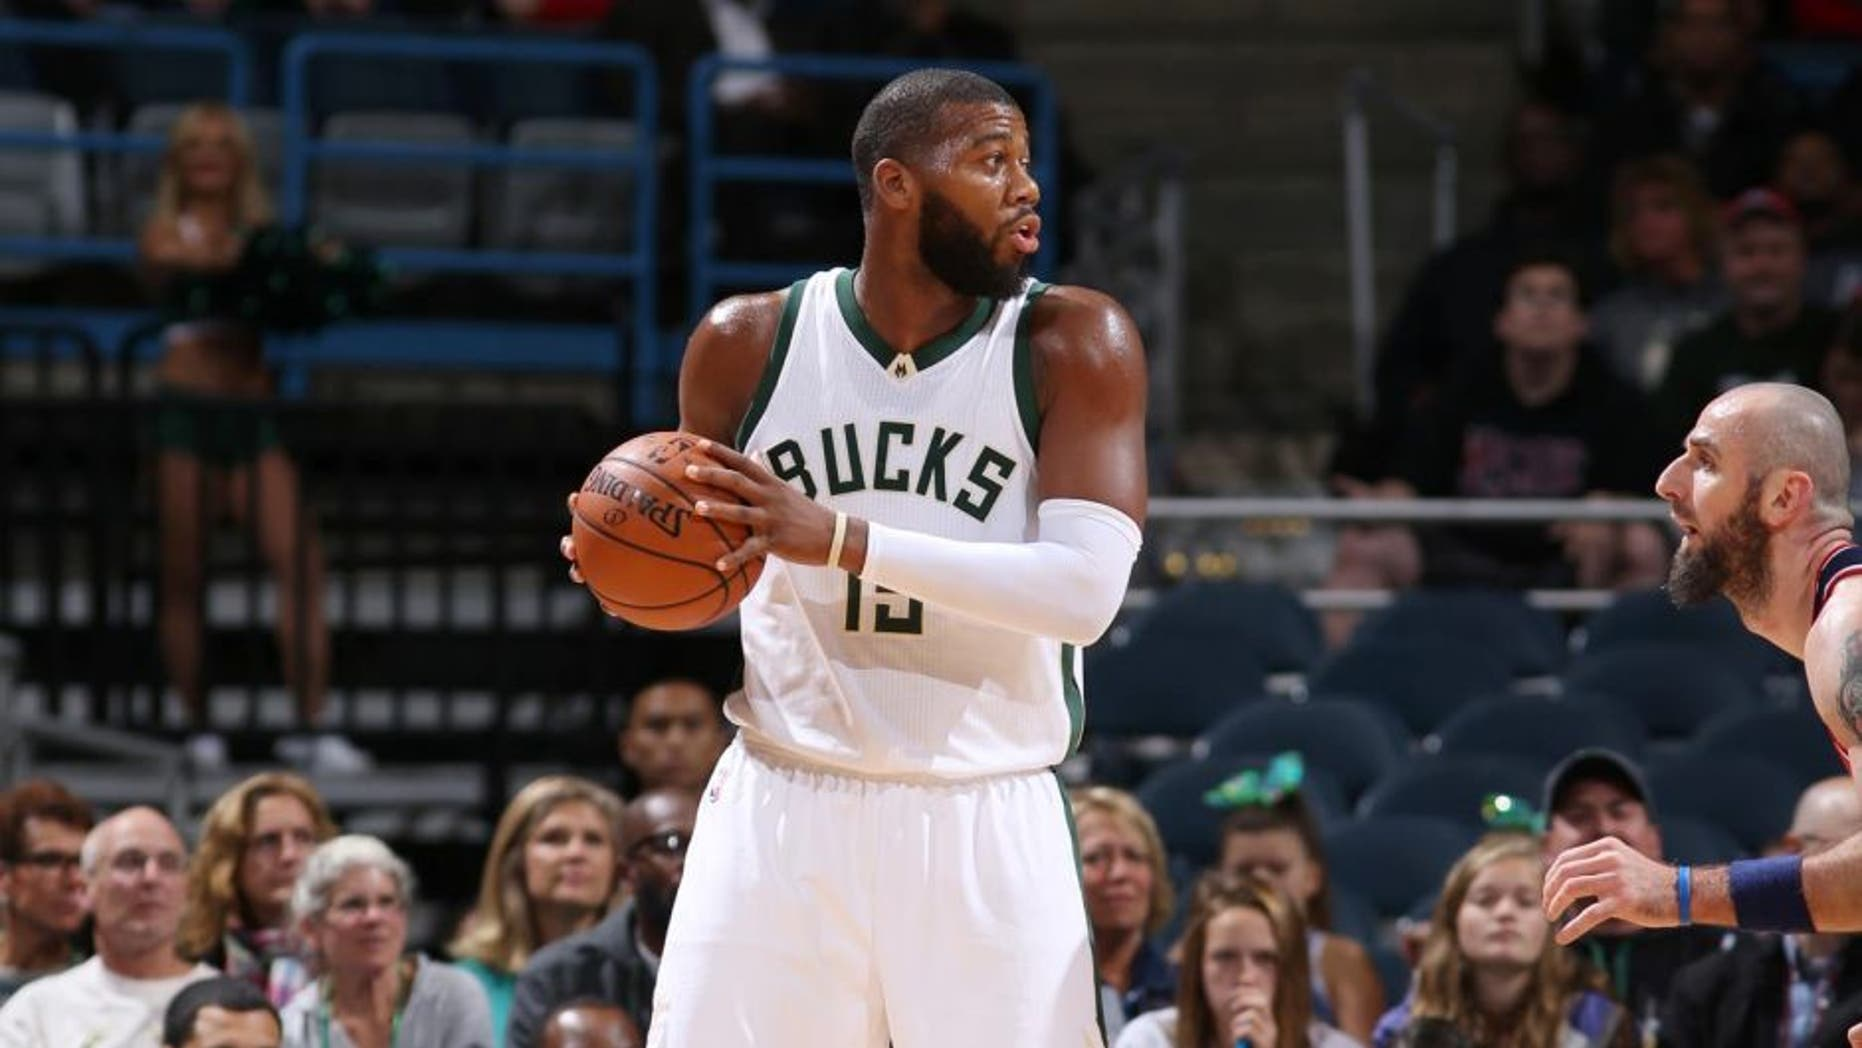 The Milwaukee Bucks' Greg Monroe handles the ball against the Washington Wizards during a preseason game Oct. 17, 2015, at the BMO Harris Bradley Center in Milwaukee, Wis.